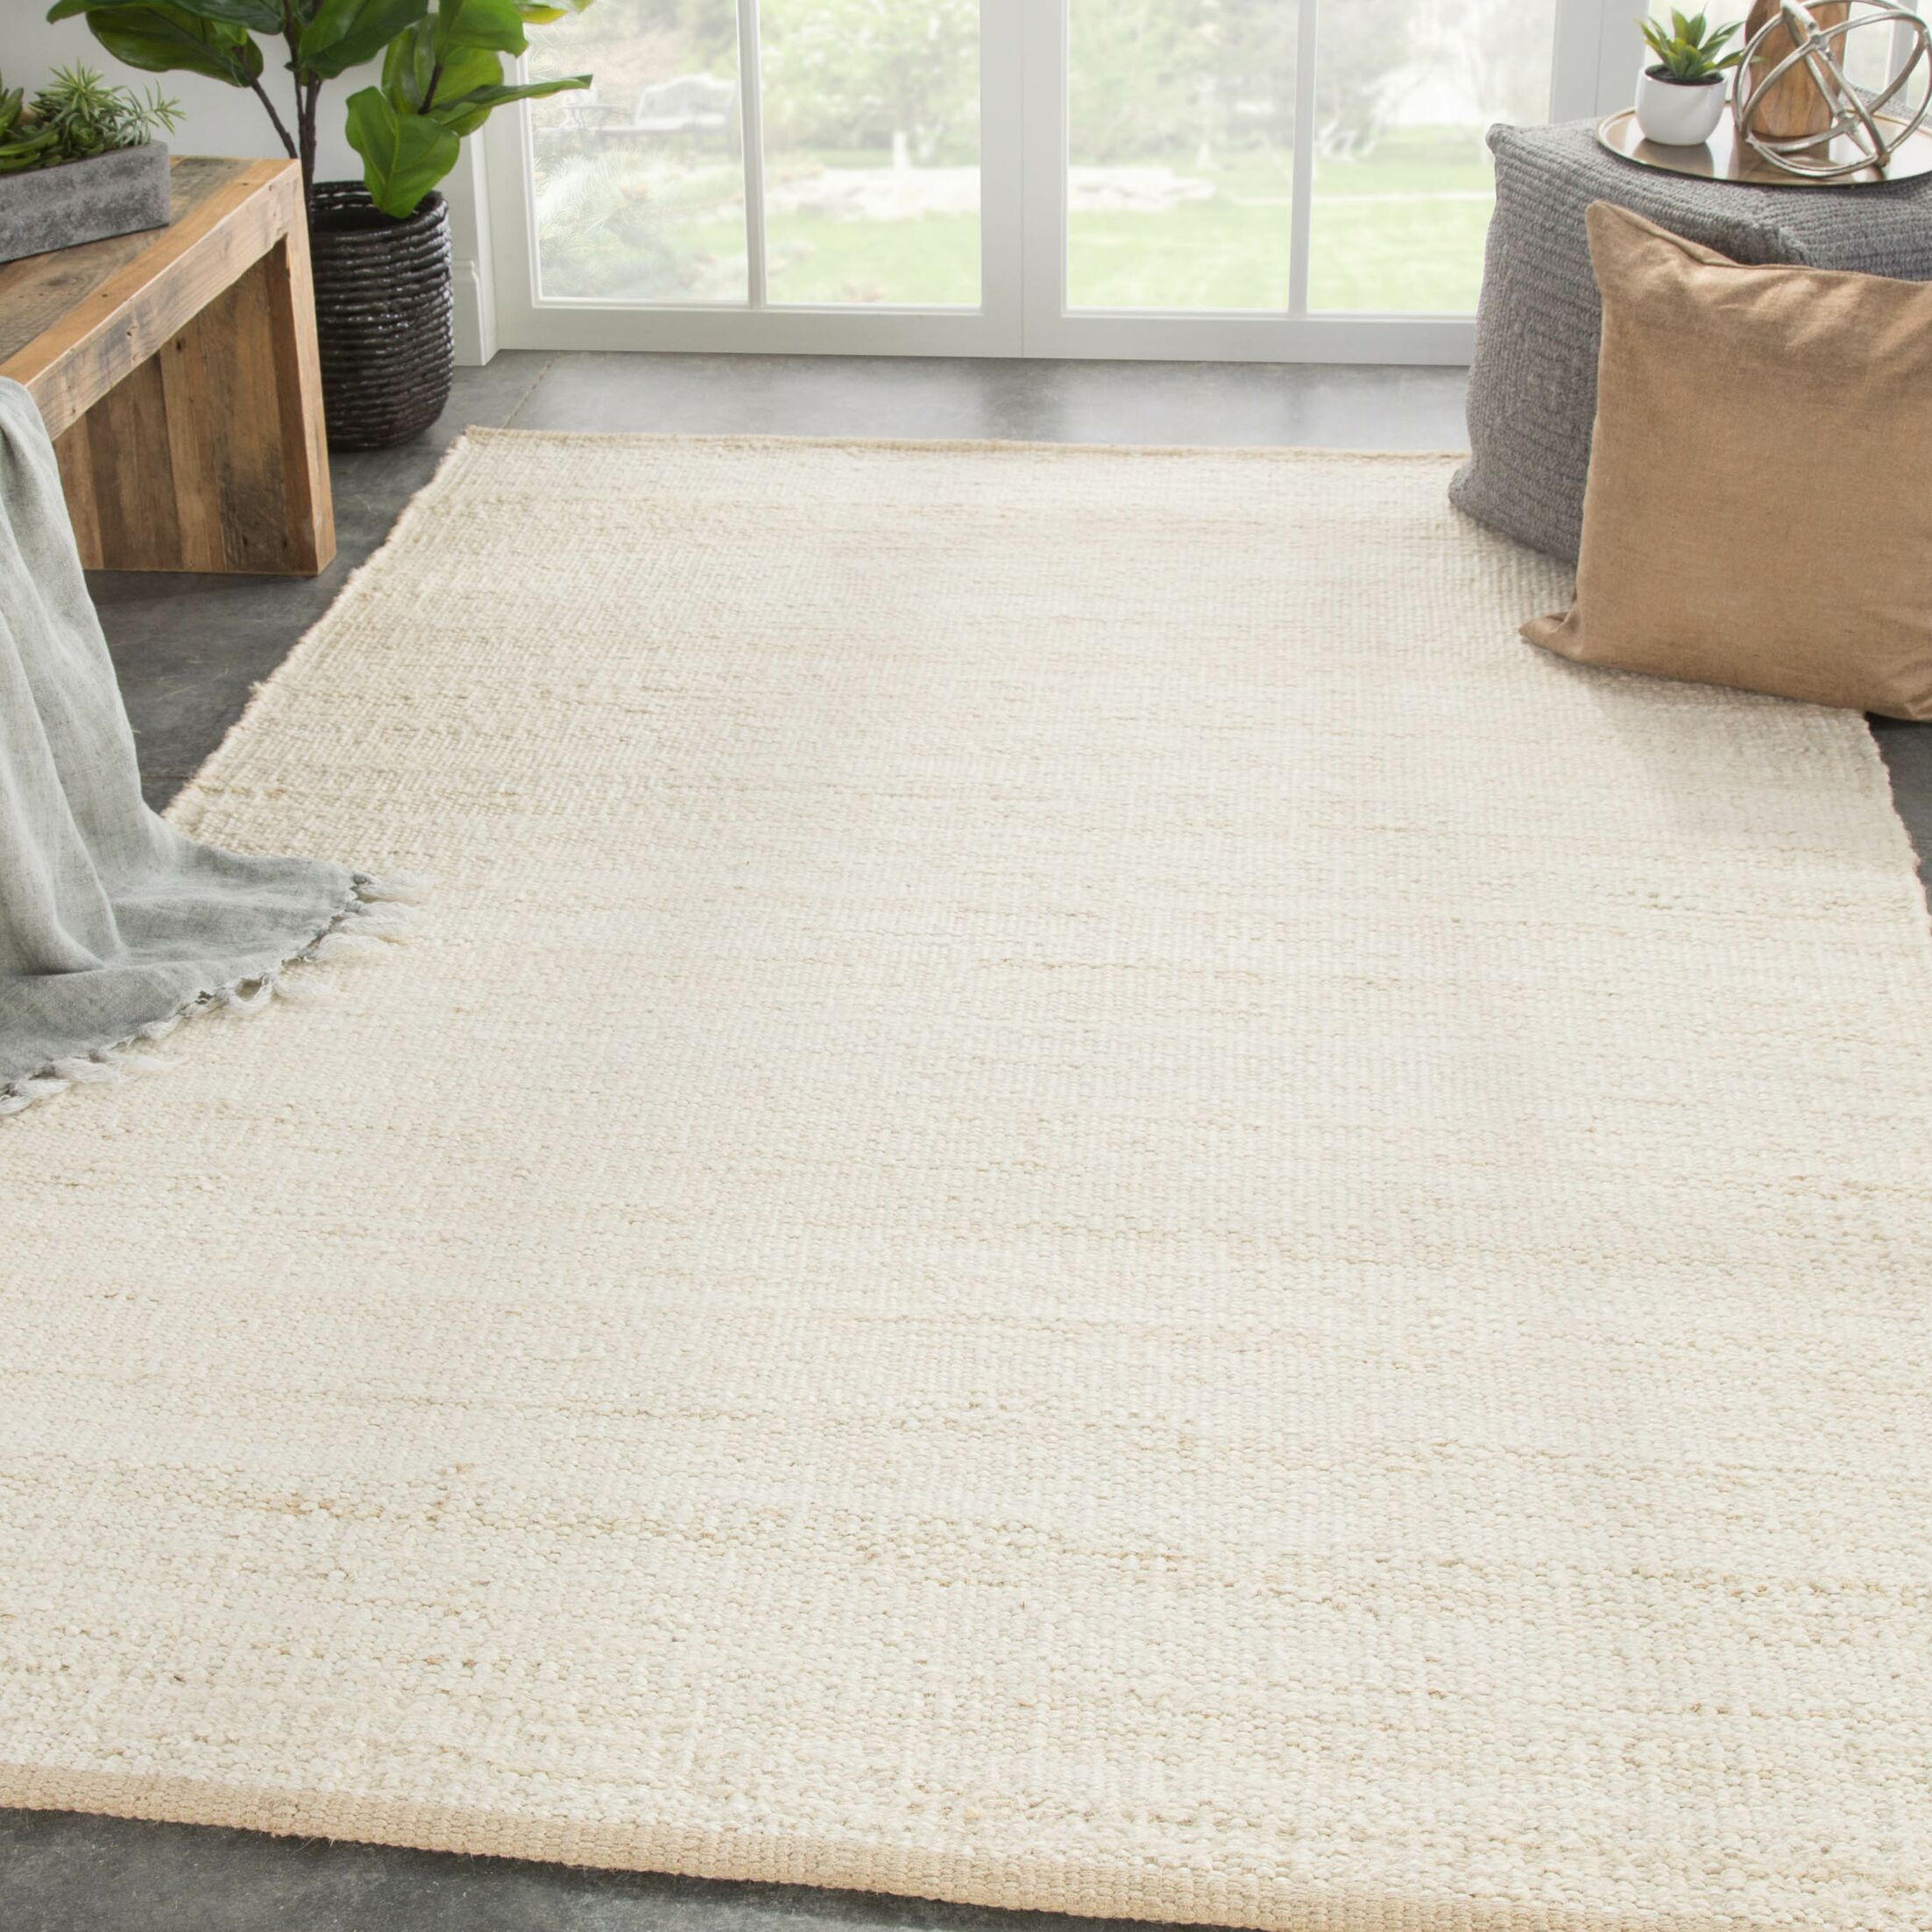 Prentiss Natural Solid Hand-Woven Cream Area Rug Rug Size: Rectangle 9' x 12'